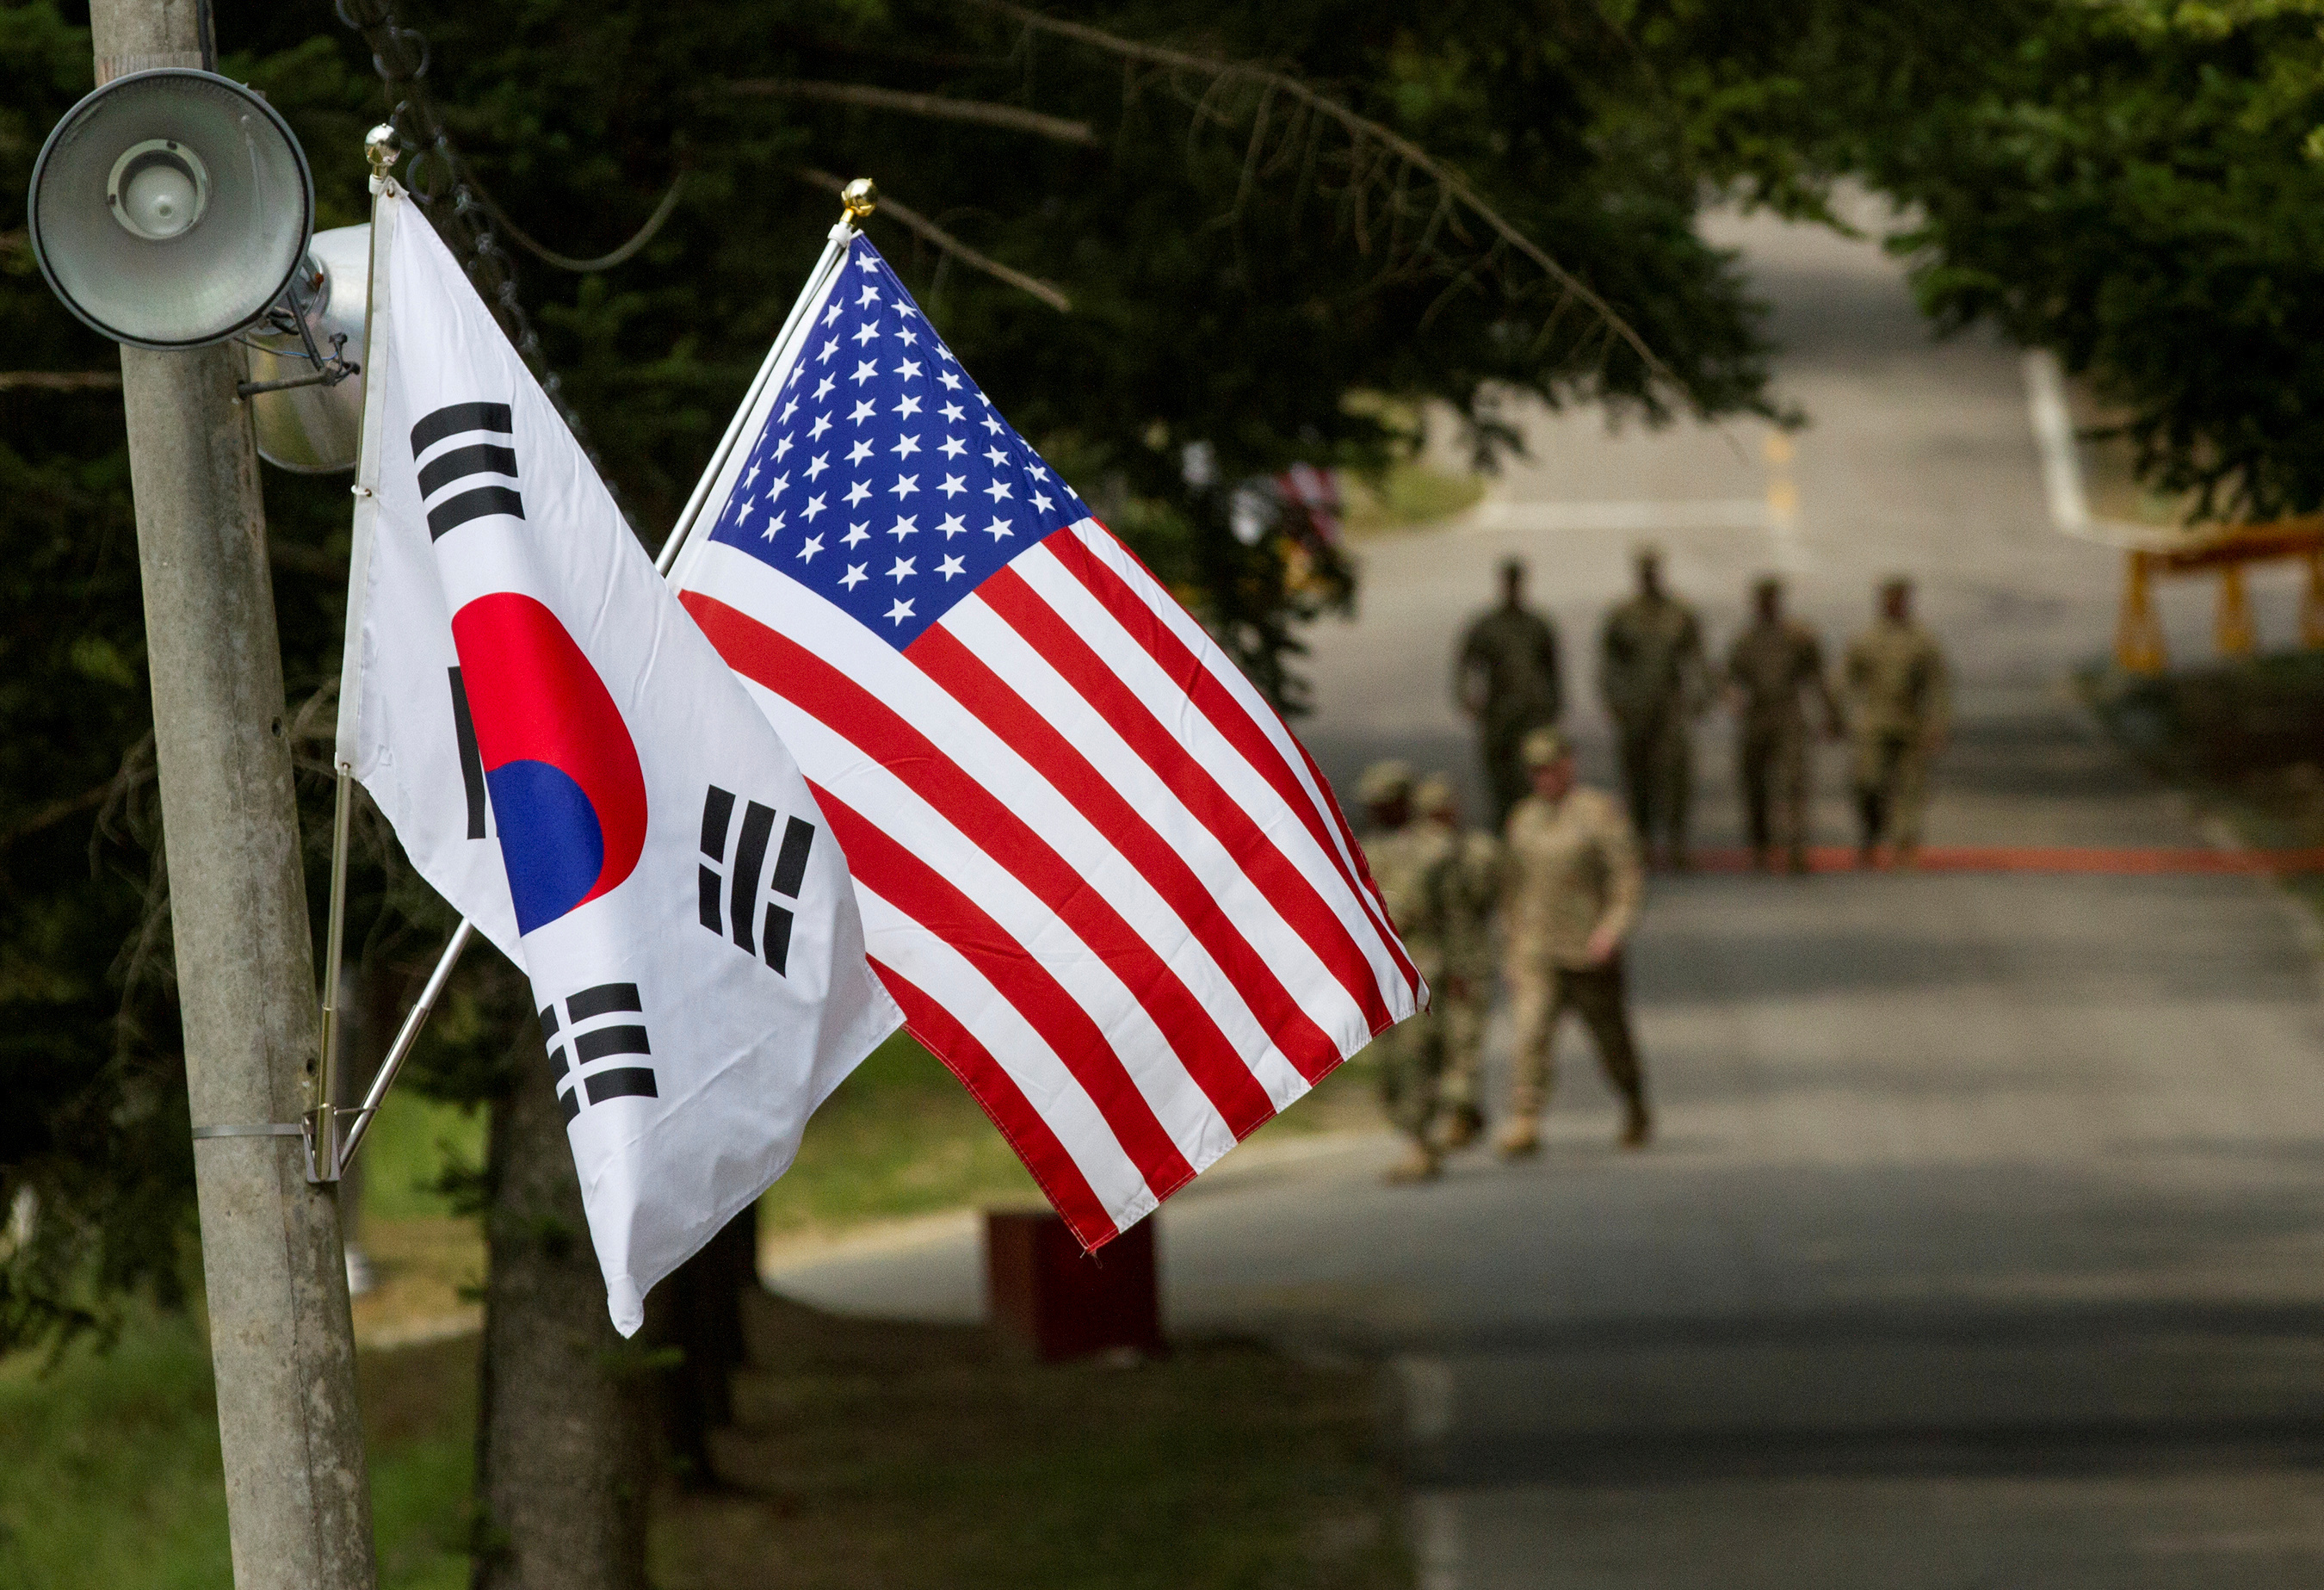 The South Korean and American flags fly next to each other at Yongin, South Korea, August 23, 2016.  Courtesy Ken Scar/U.S. Army/Handout via REUTERS